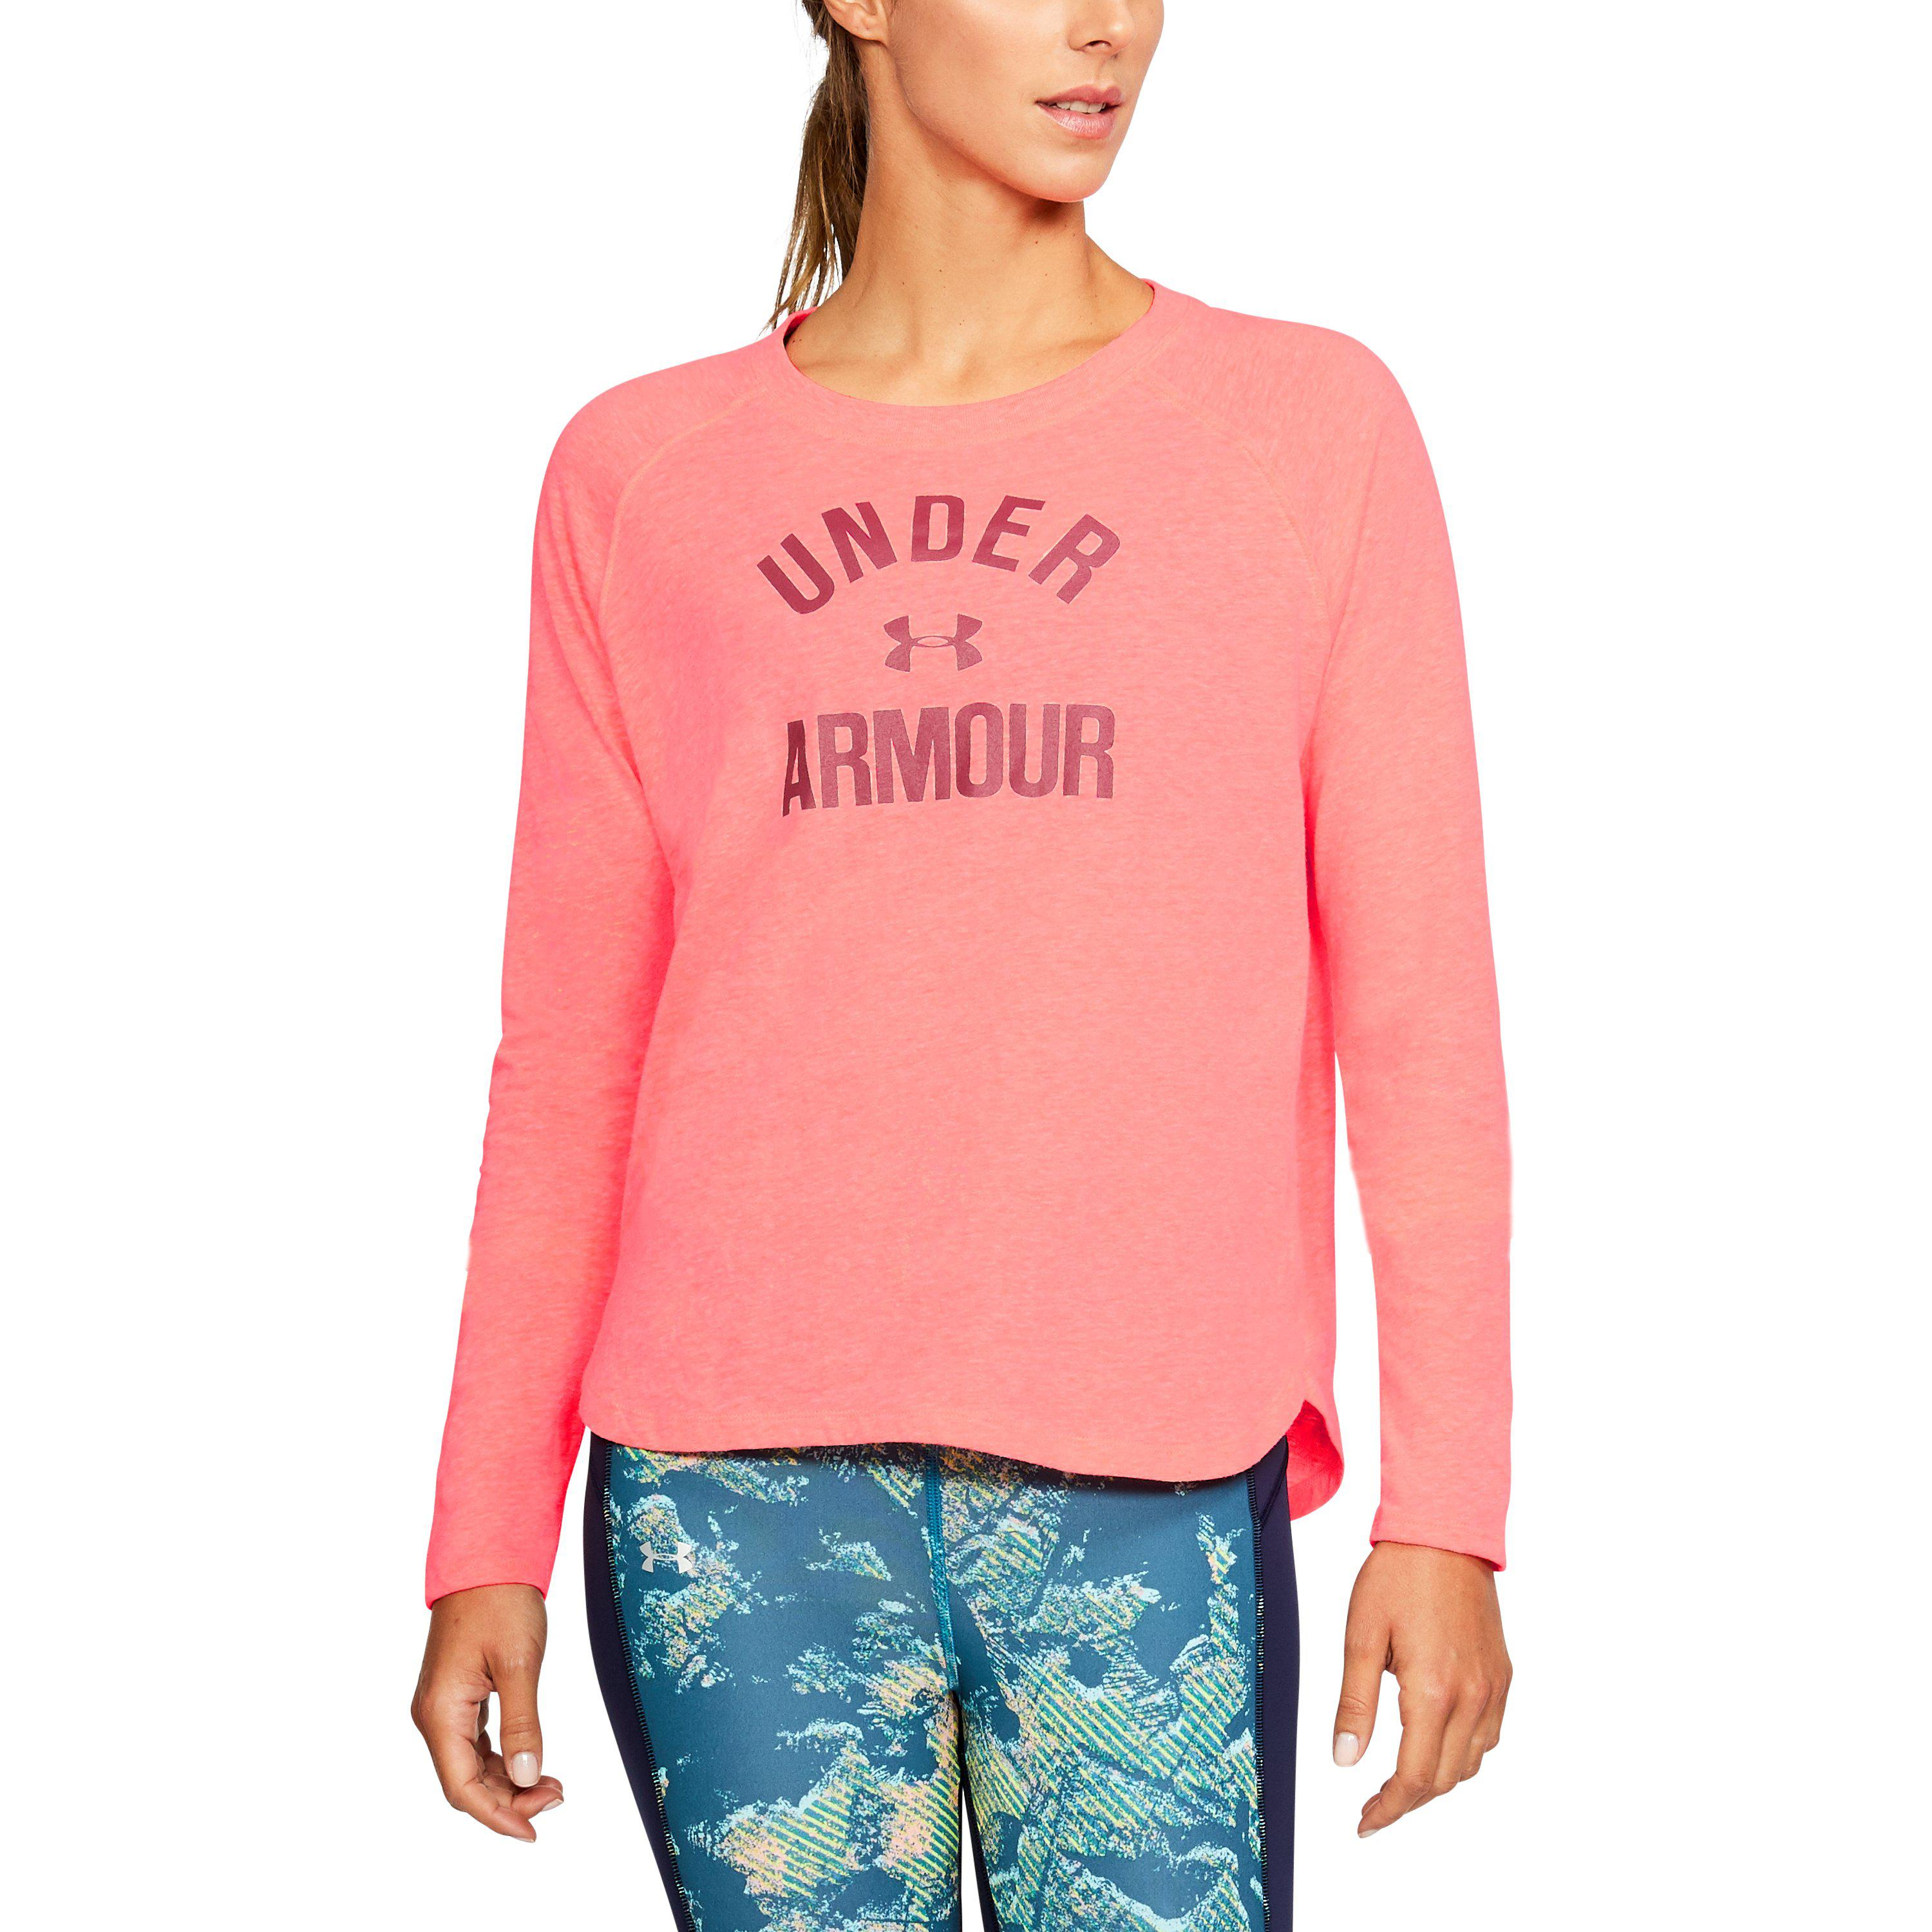 Under Armour Womens Triblend Long Sleeve Graphic